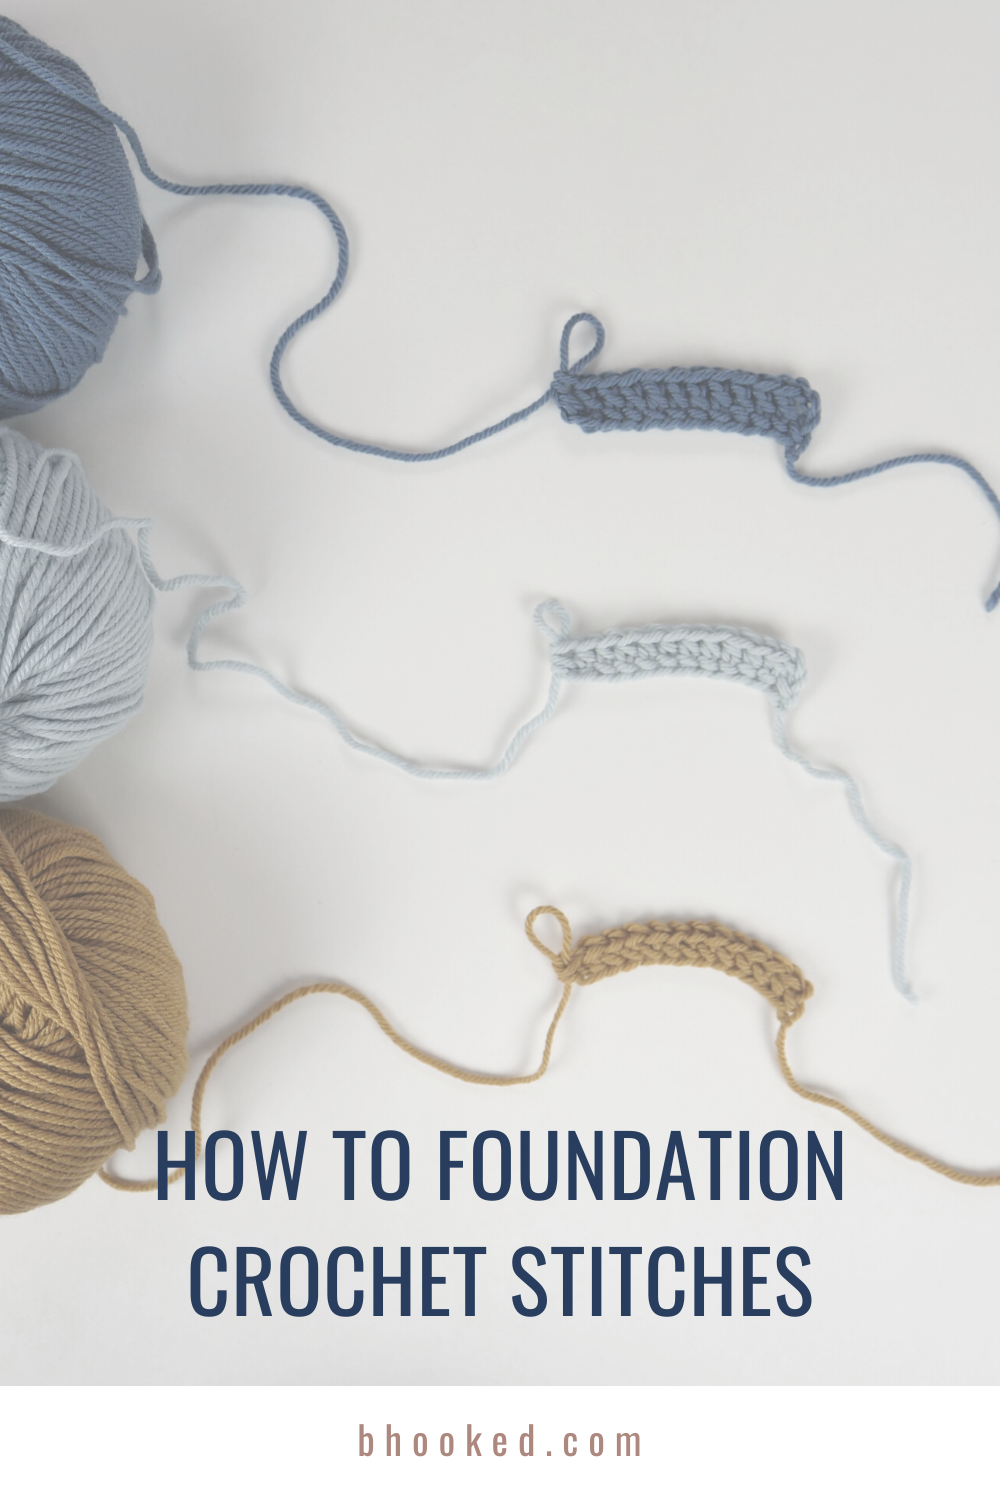 How to Foundation Crochet Stitches